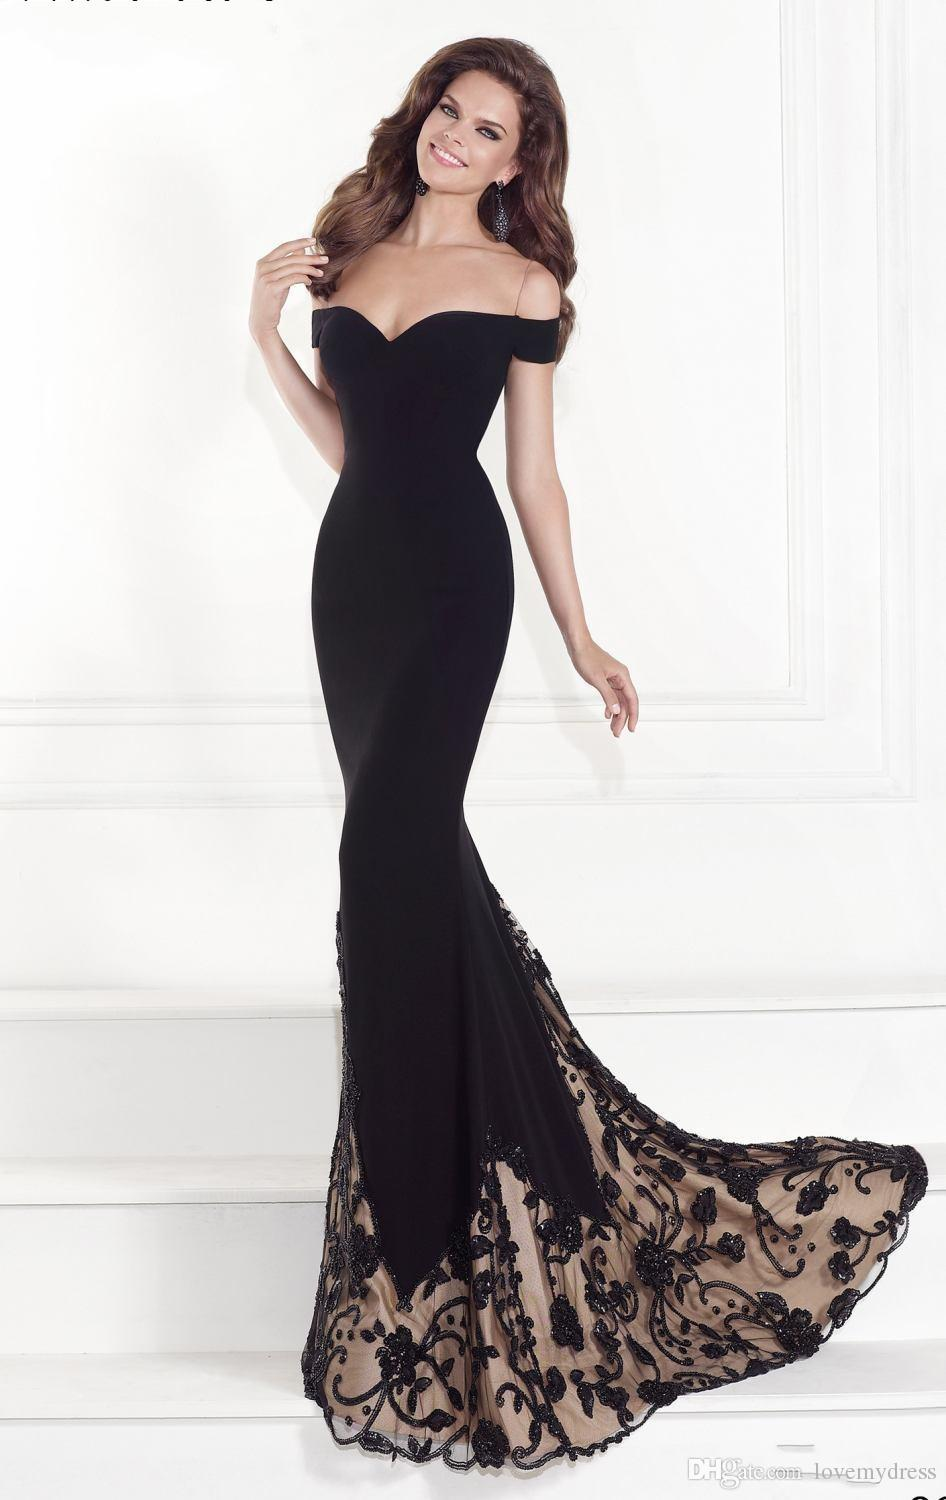 Black Prom Dresses Appliques Elegant Amazing Designer Mermaid Trumpet Prom Dress Off Shoulder Cheap Party Dresses 2016 Inexpensive Buy Prom Dresses Camille Prom Dresses From Lovemydress, $76.36| Dhgate.Com